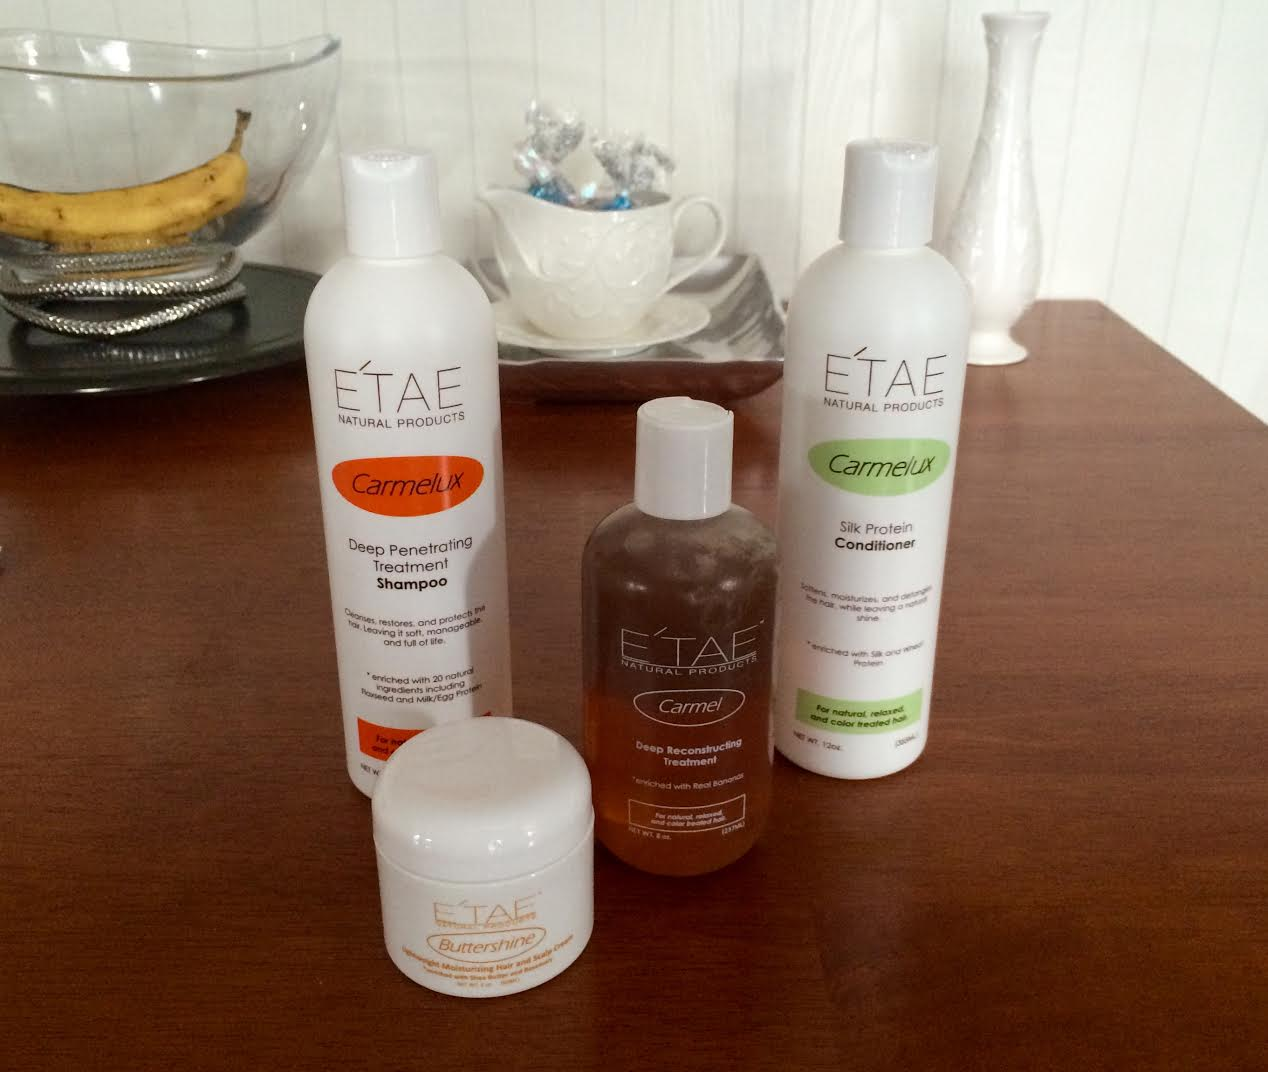 etae hair product reviews 2015